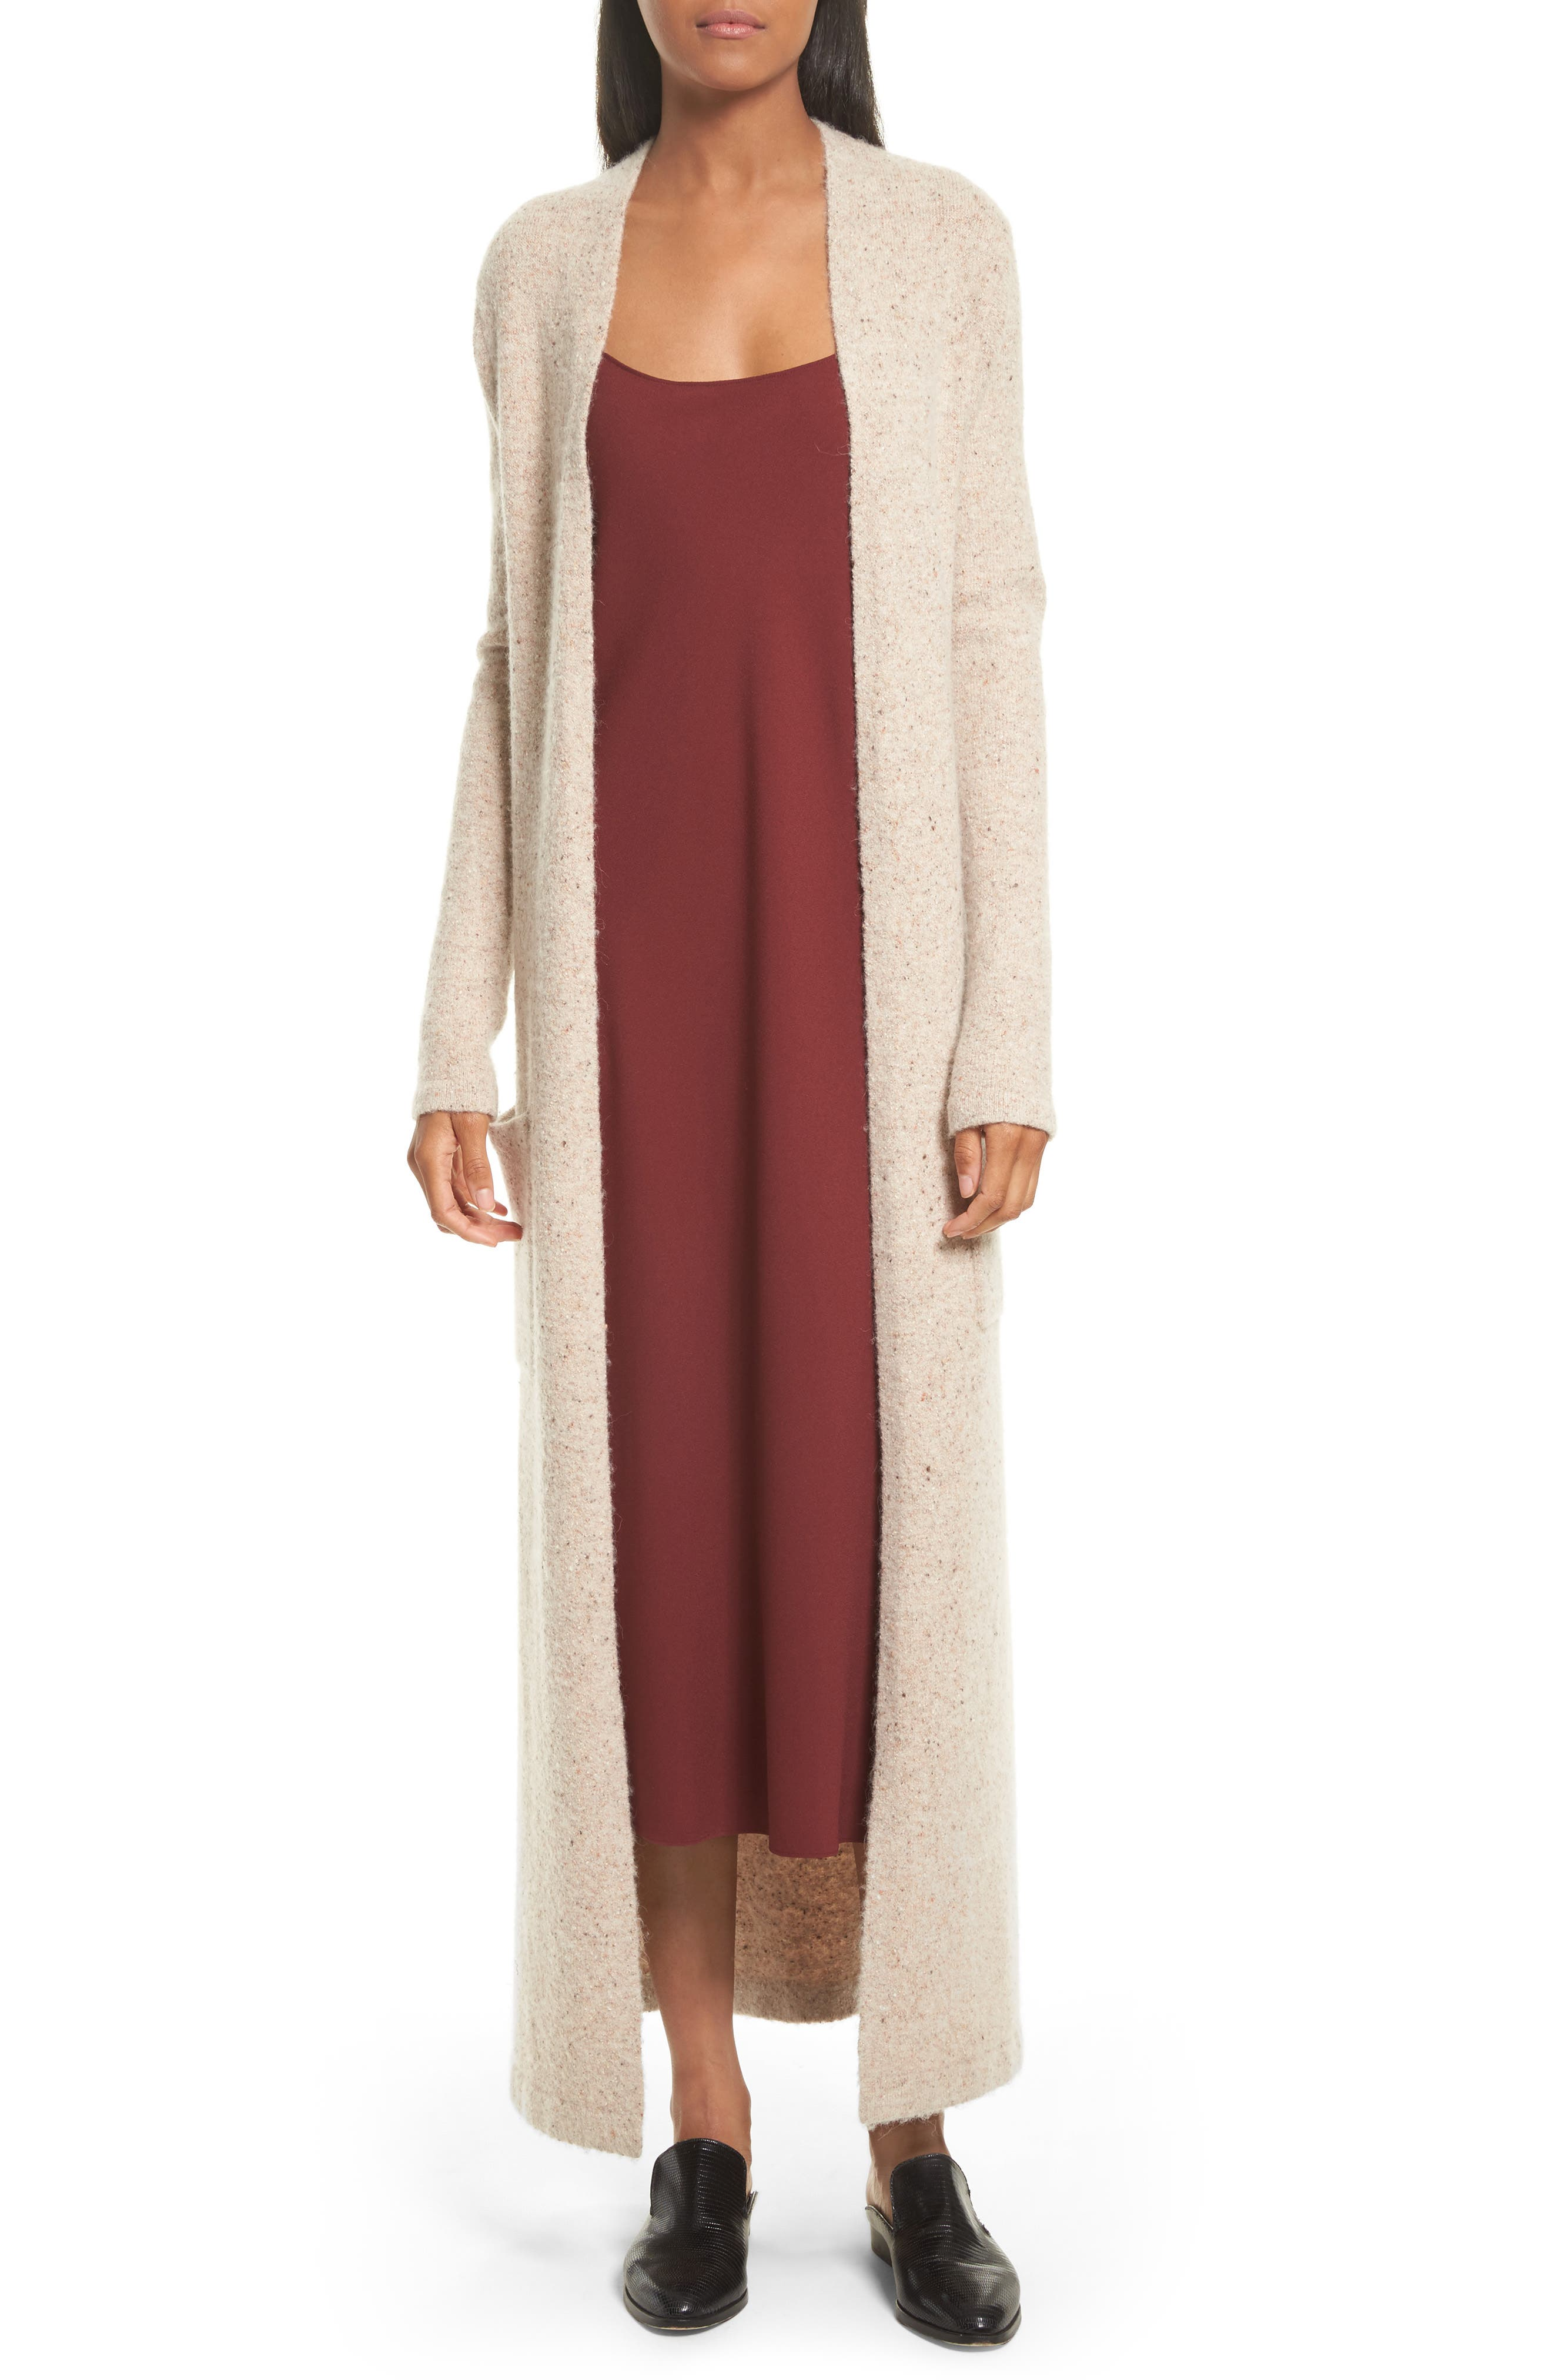 Torina Donegal Longline Cardigan,                             Main thumbnail 1, color,                             Oat Multi